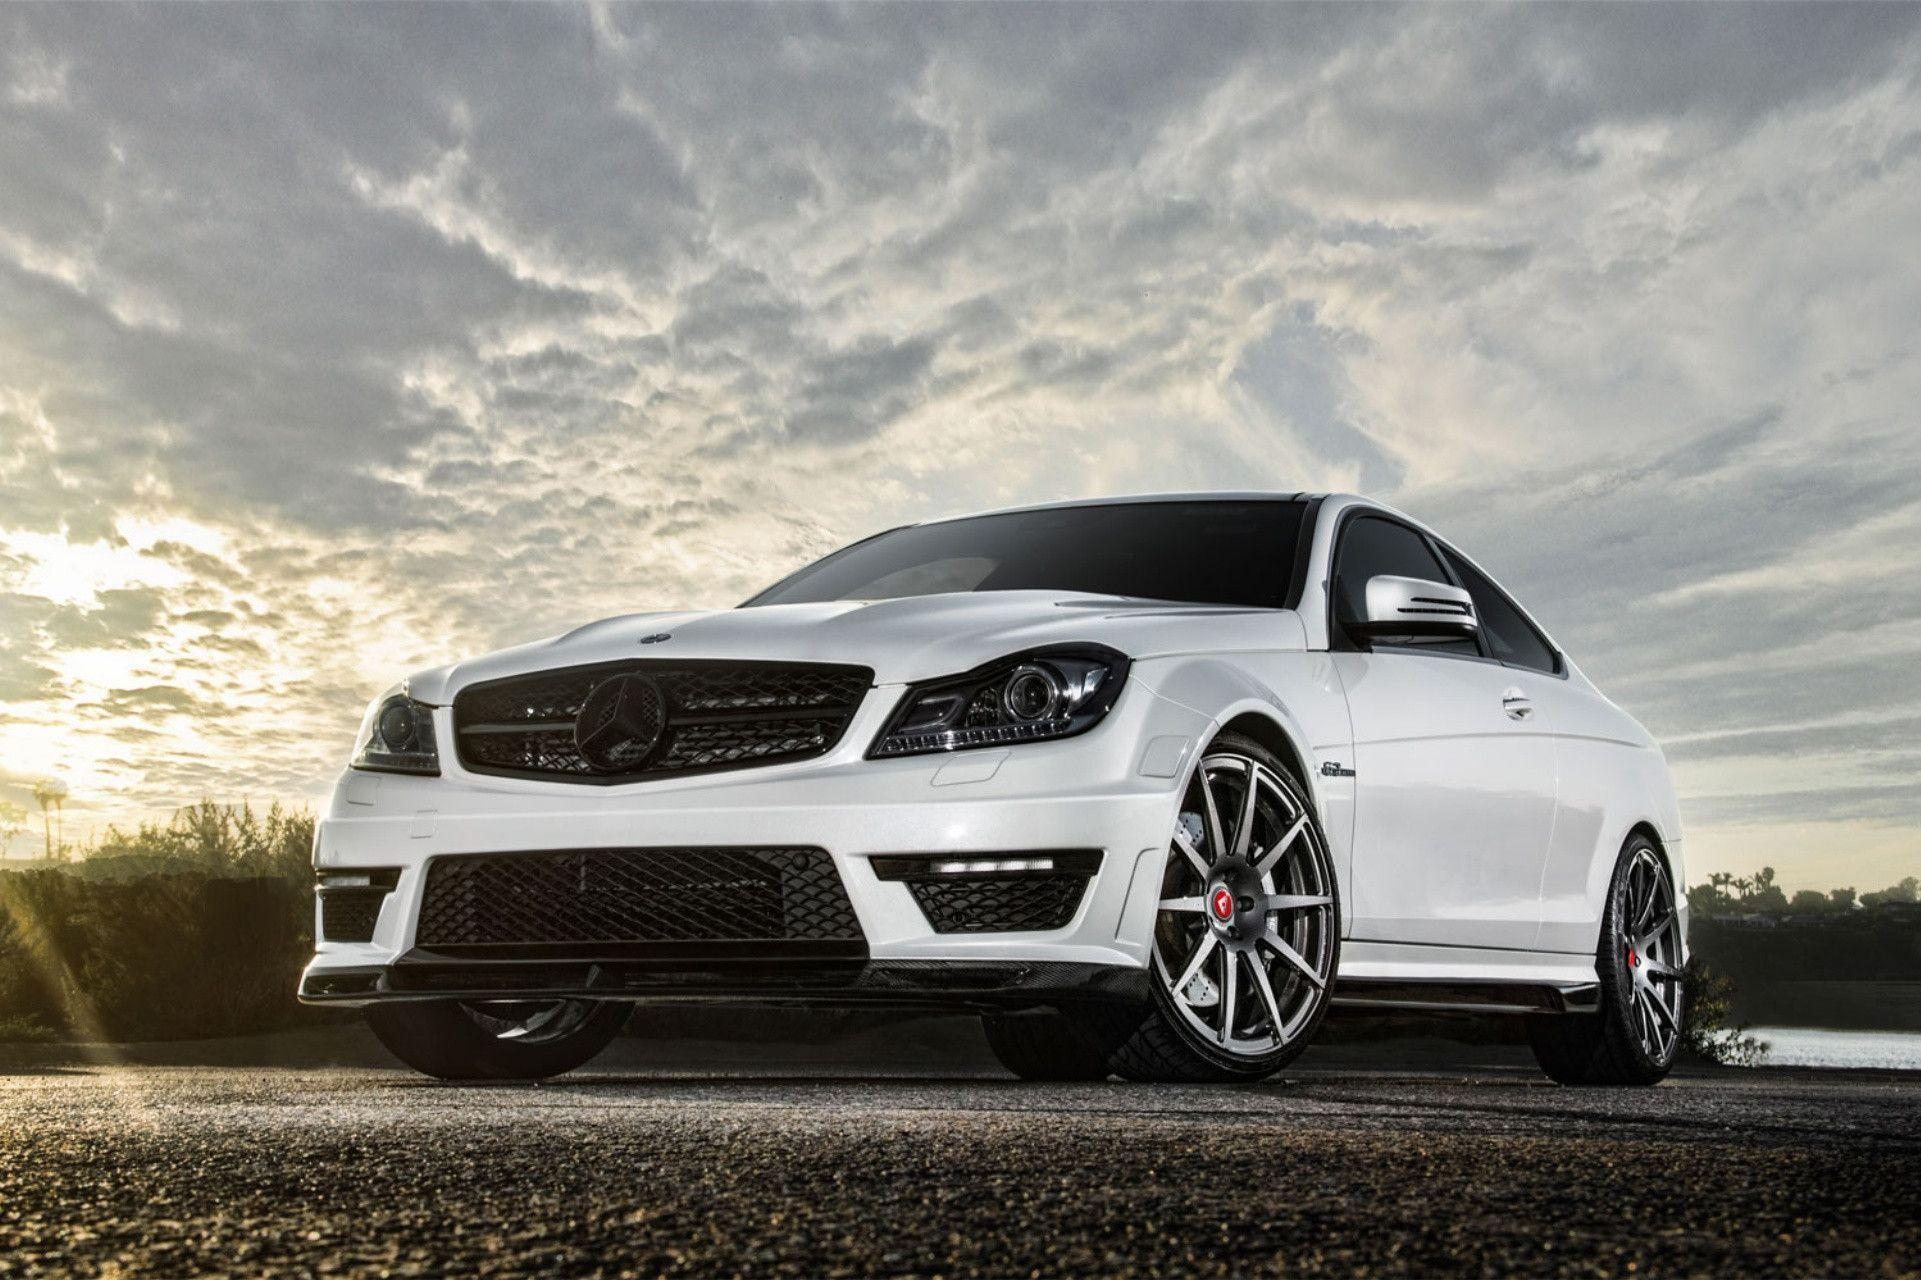 Mercedes AMG Wallpapers 1921x1280